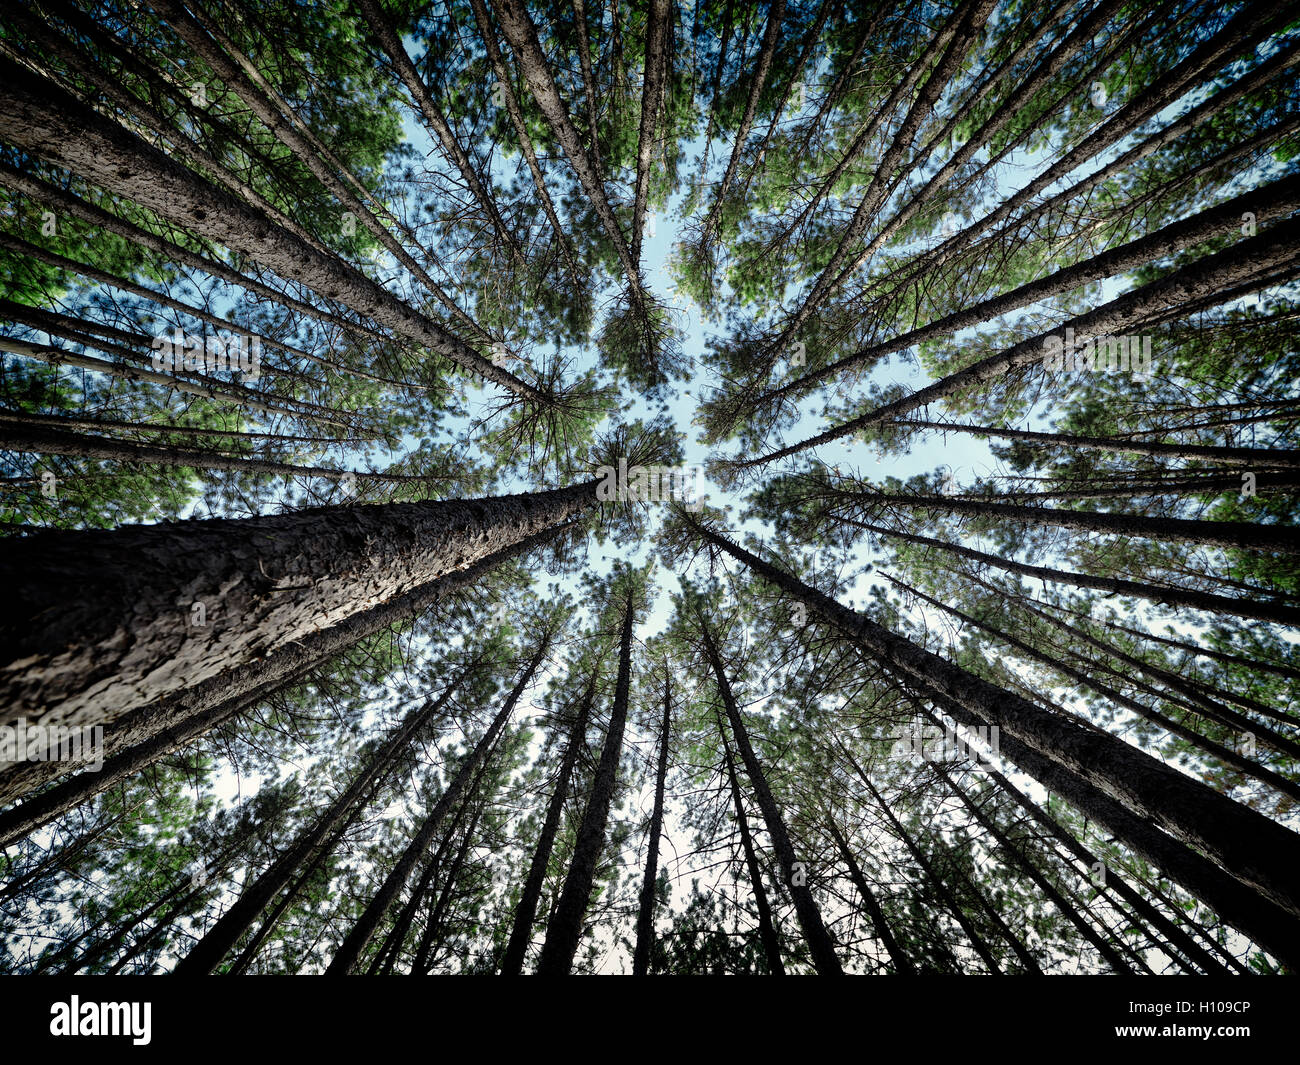 Artistic abstract image of tall pine forest tree tops over blue sky, Muskoka, Ontario, Canada - Stock Image